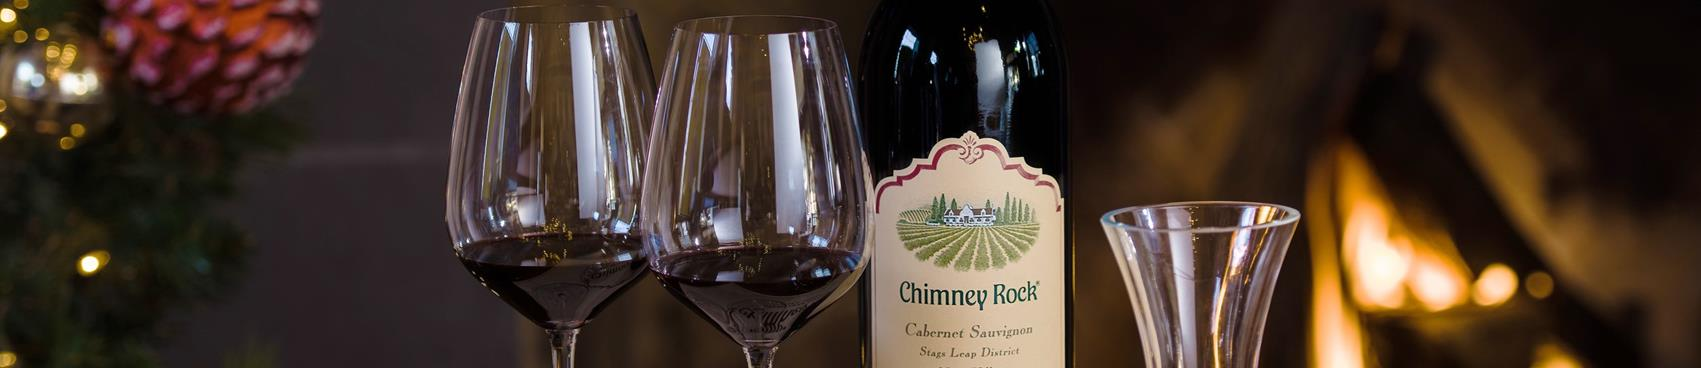 Purchase Tickets to Holiday Open House at Chimney Rock Winery on CellarPass